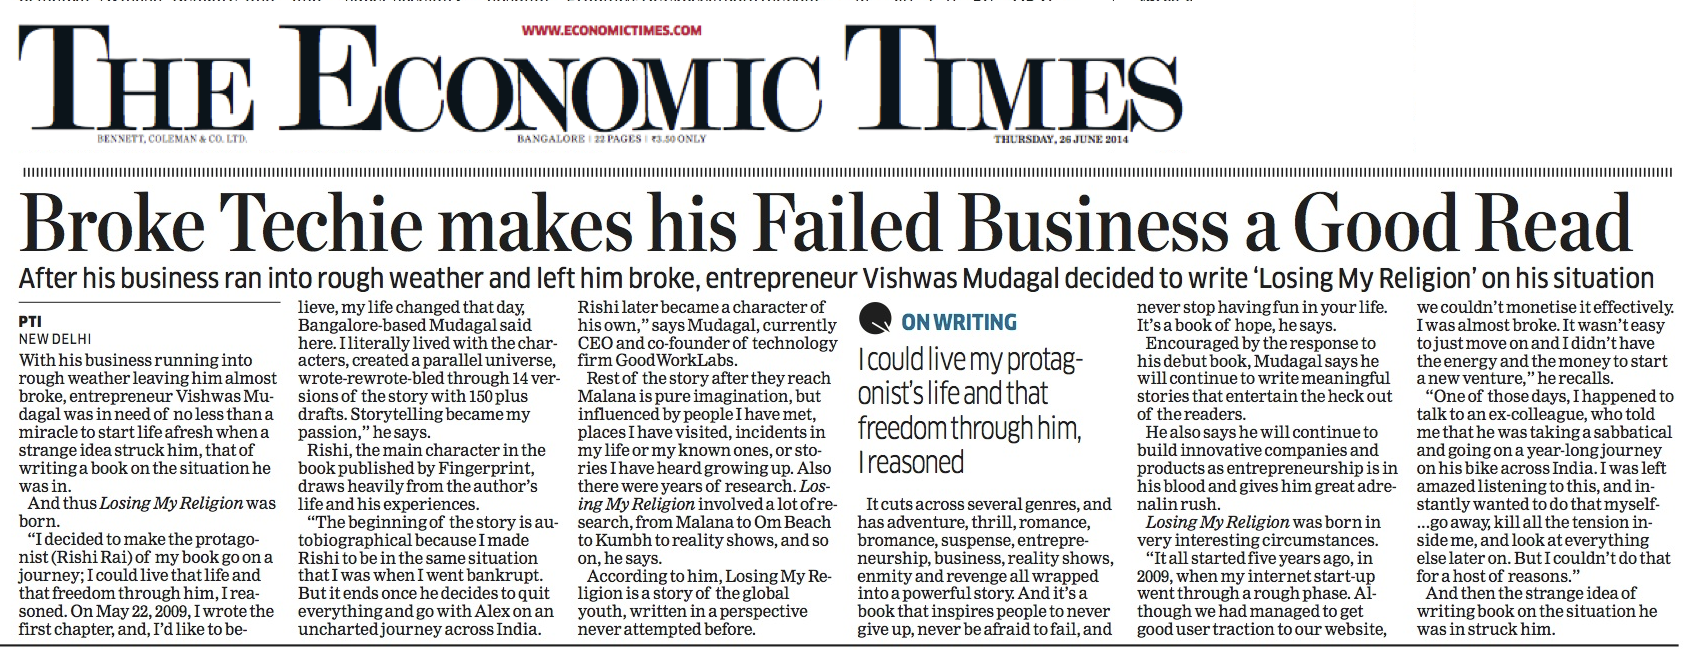 Economic Times covers ...